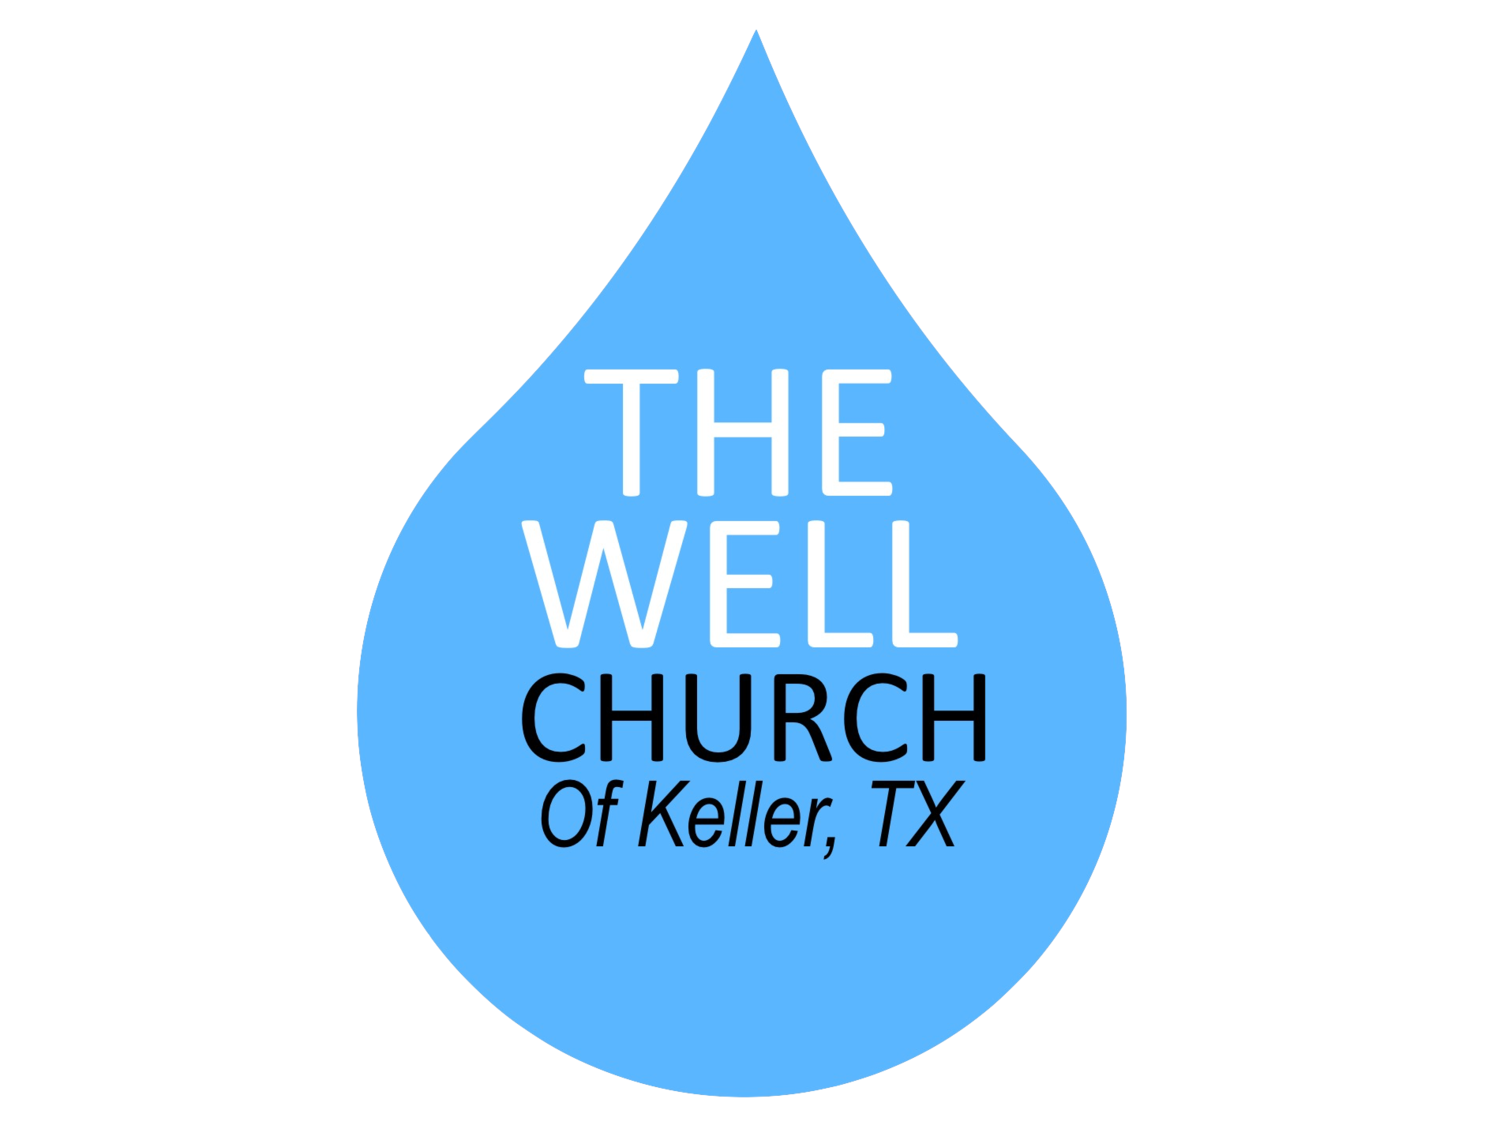 The Well Church Keller